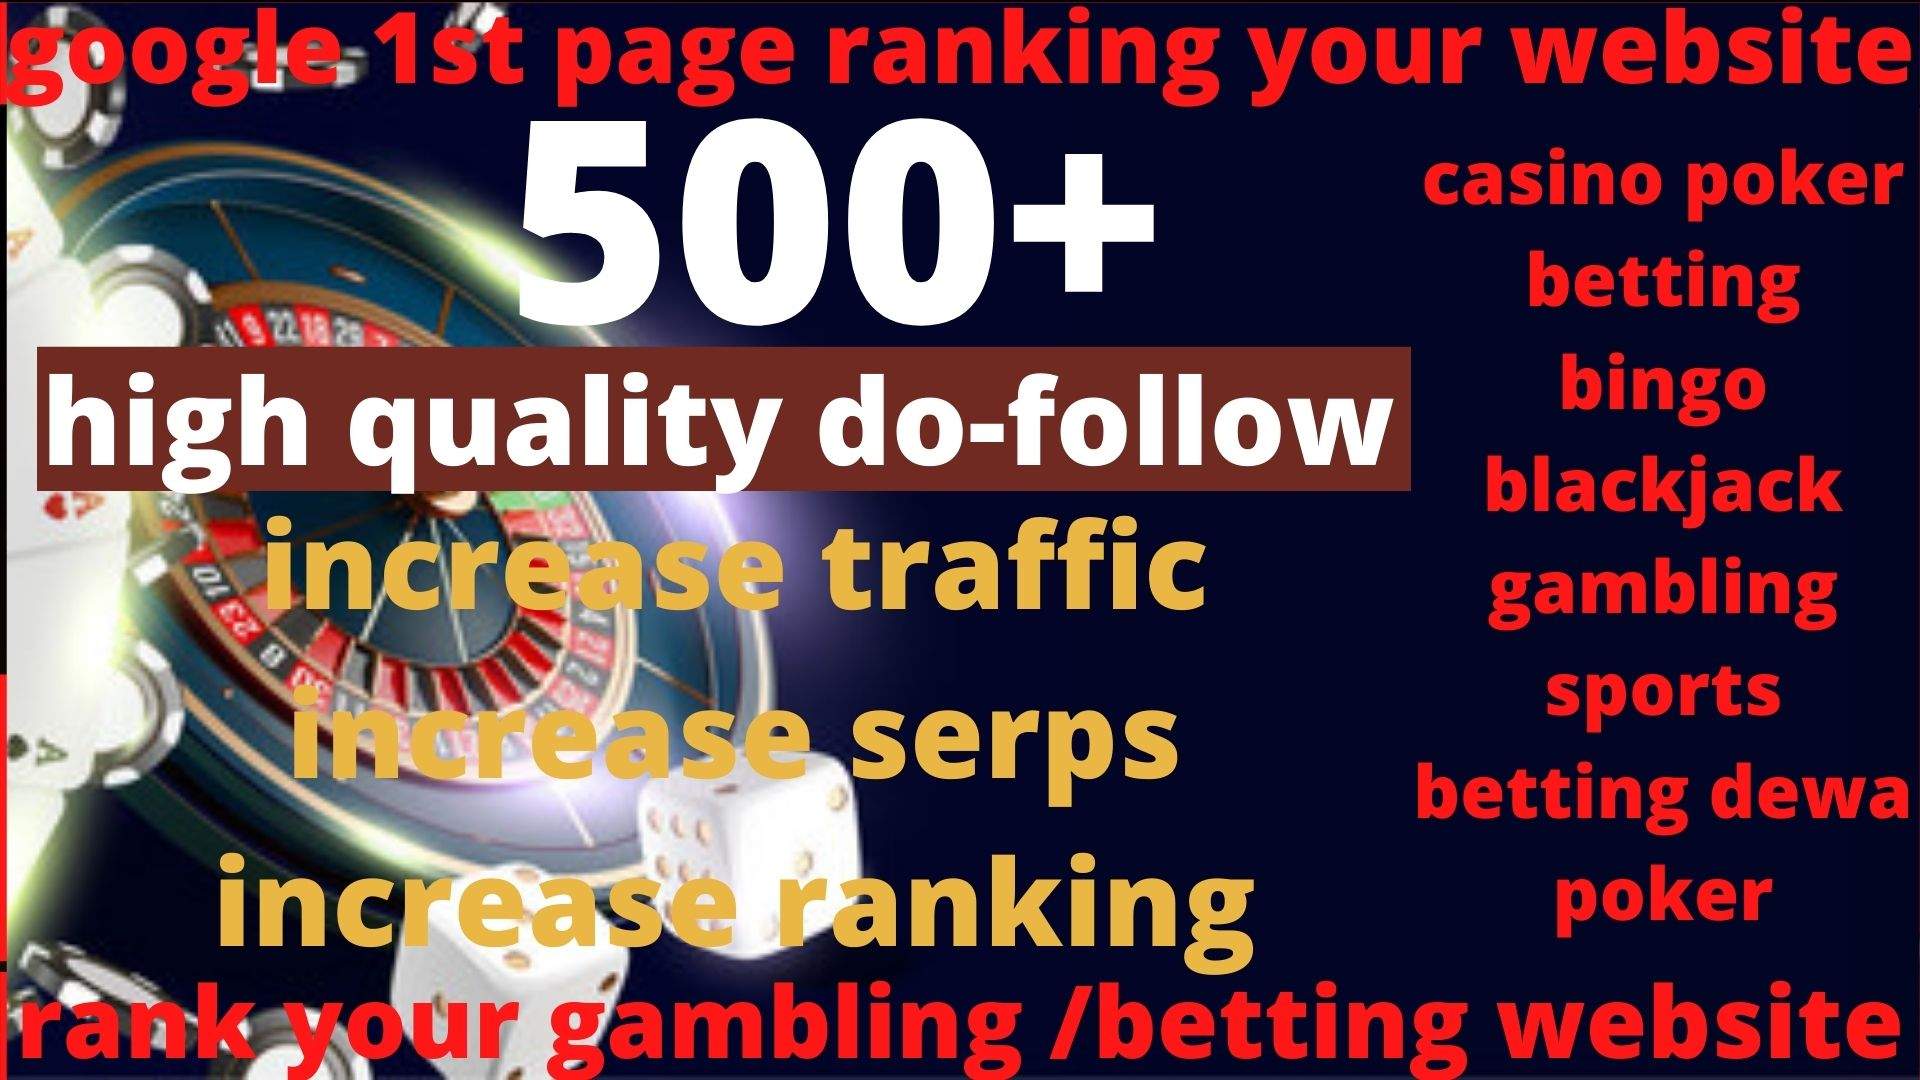 Buy x2 and get 1 Absolut 500 powerful Casino,  Gambling,  Poker,  Sports High Quality Web2.0 Backlinks